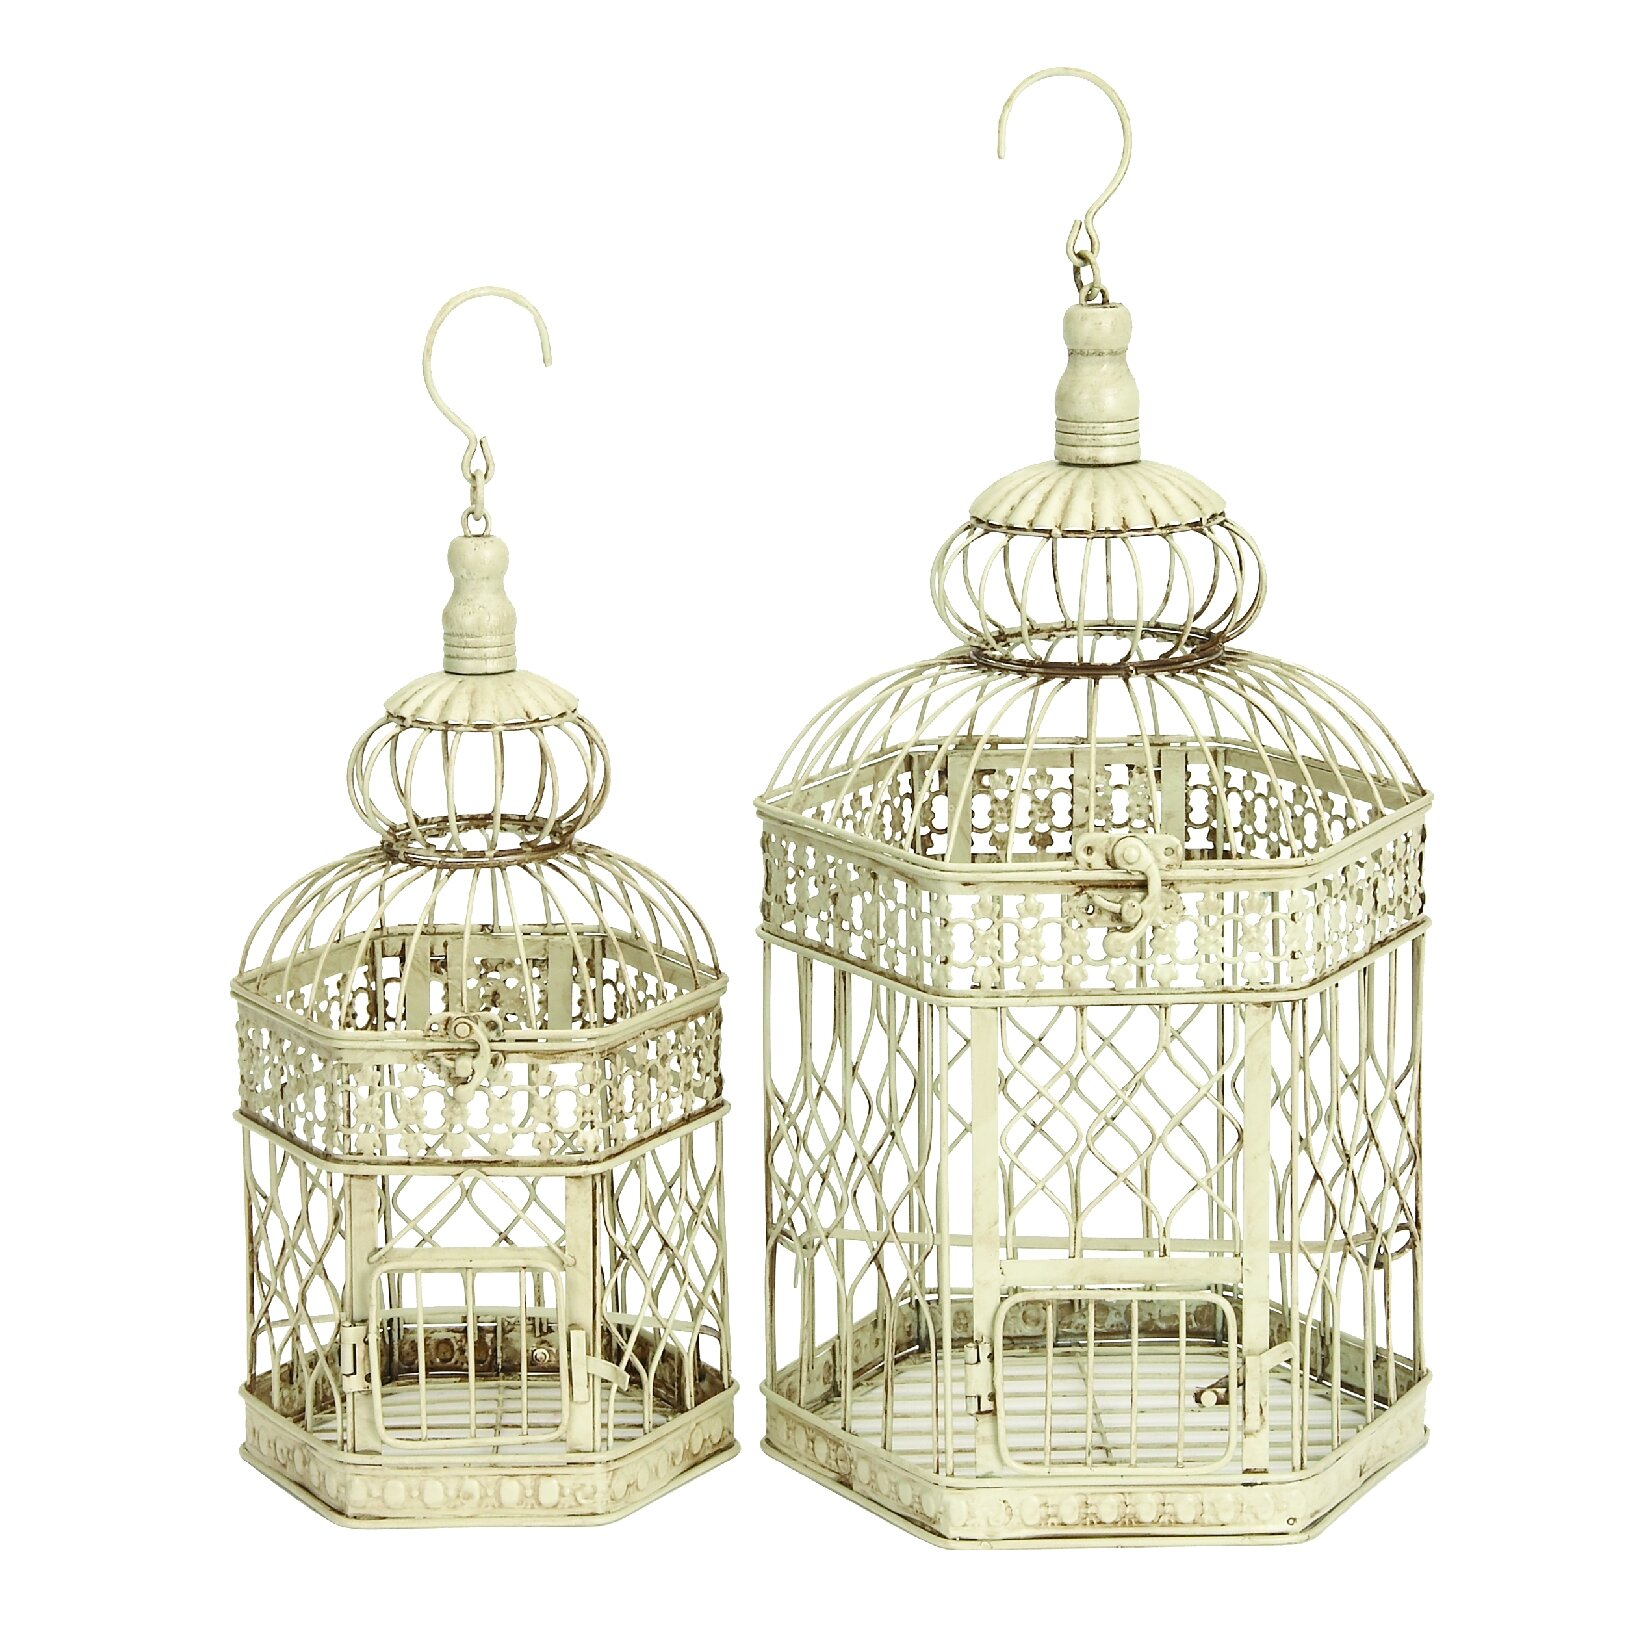 Darby Home Co 2 Piece Decorative Metal Bird Cage Set & Reviews ...